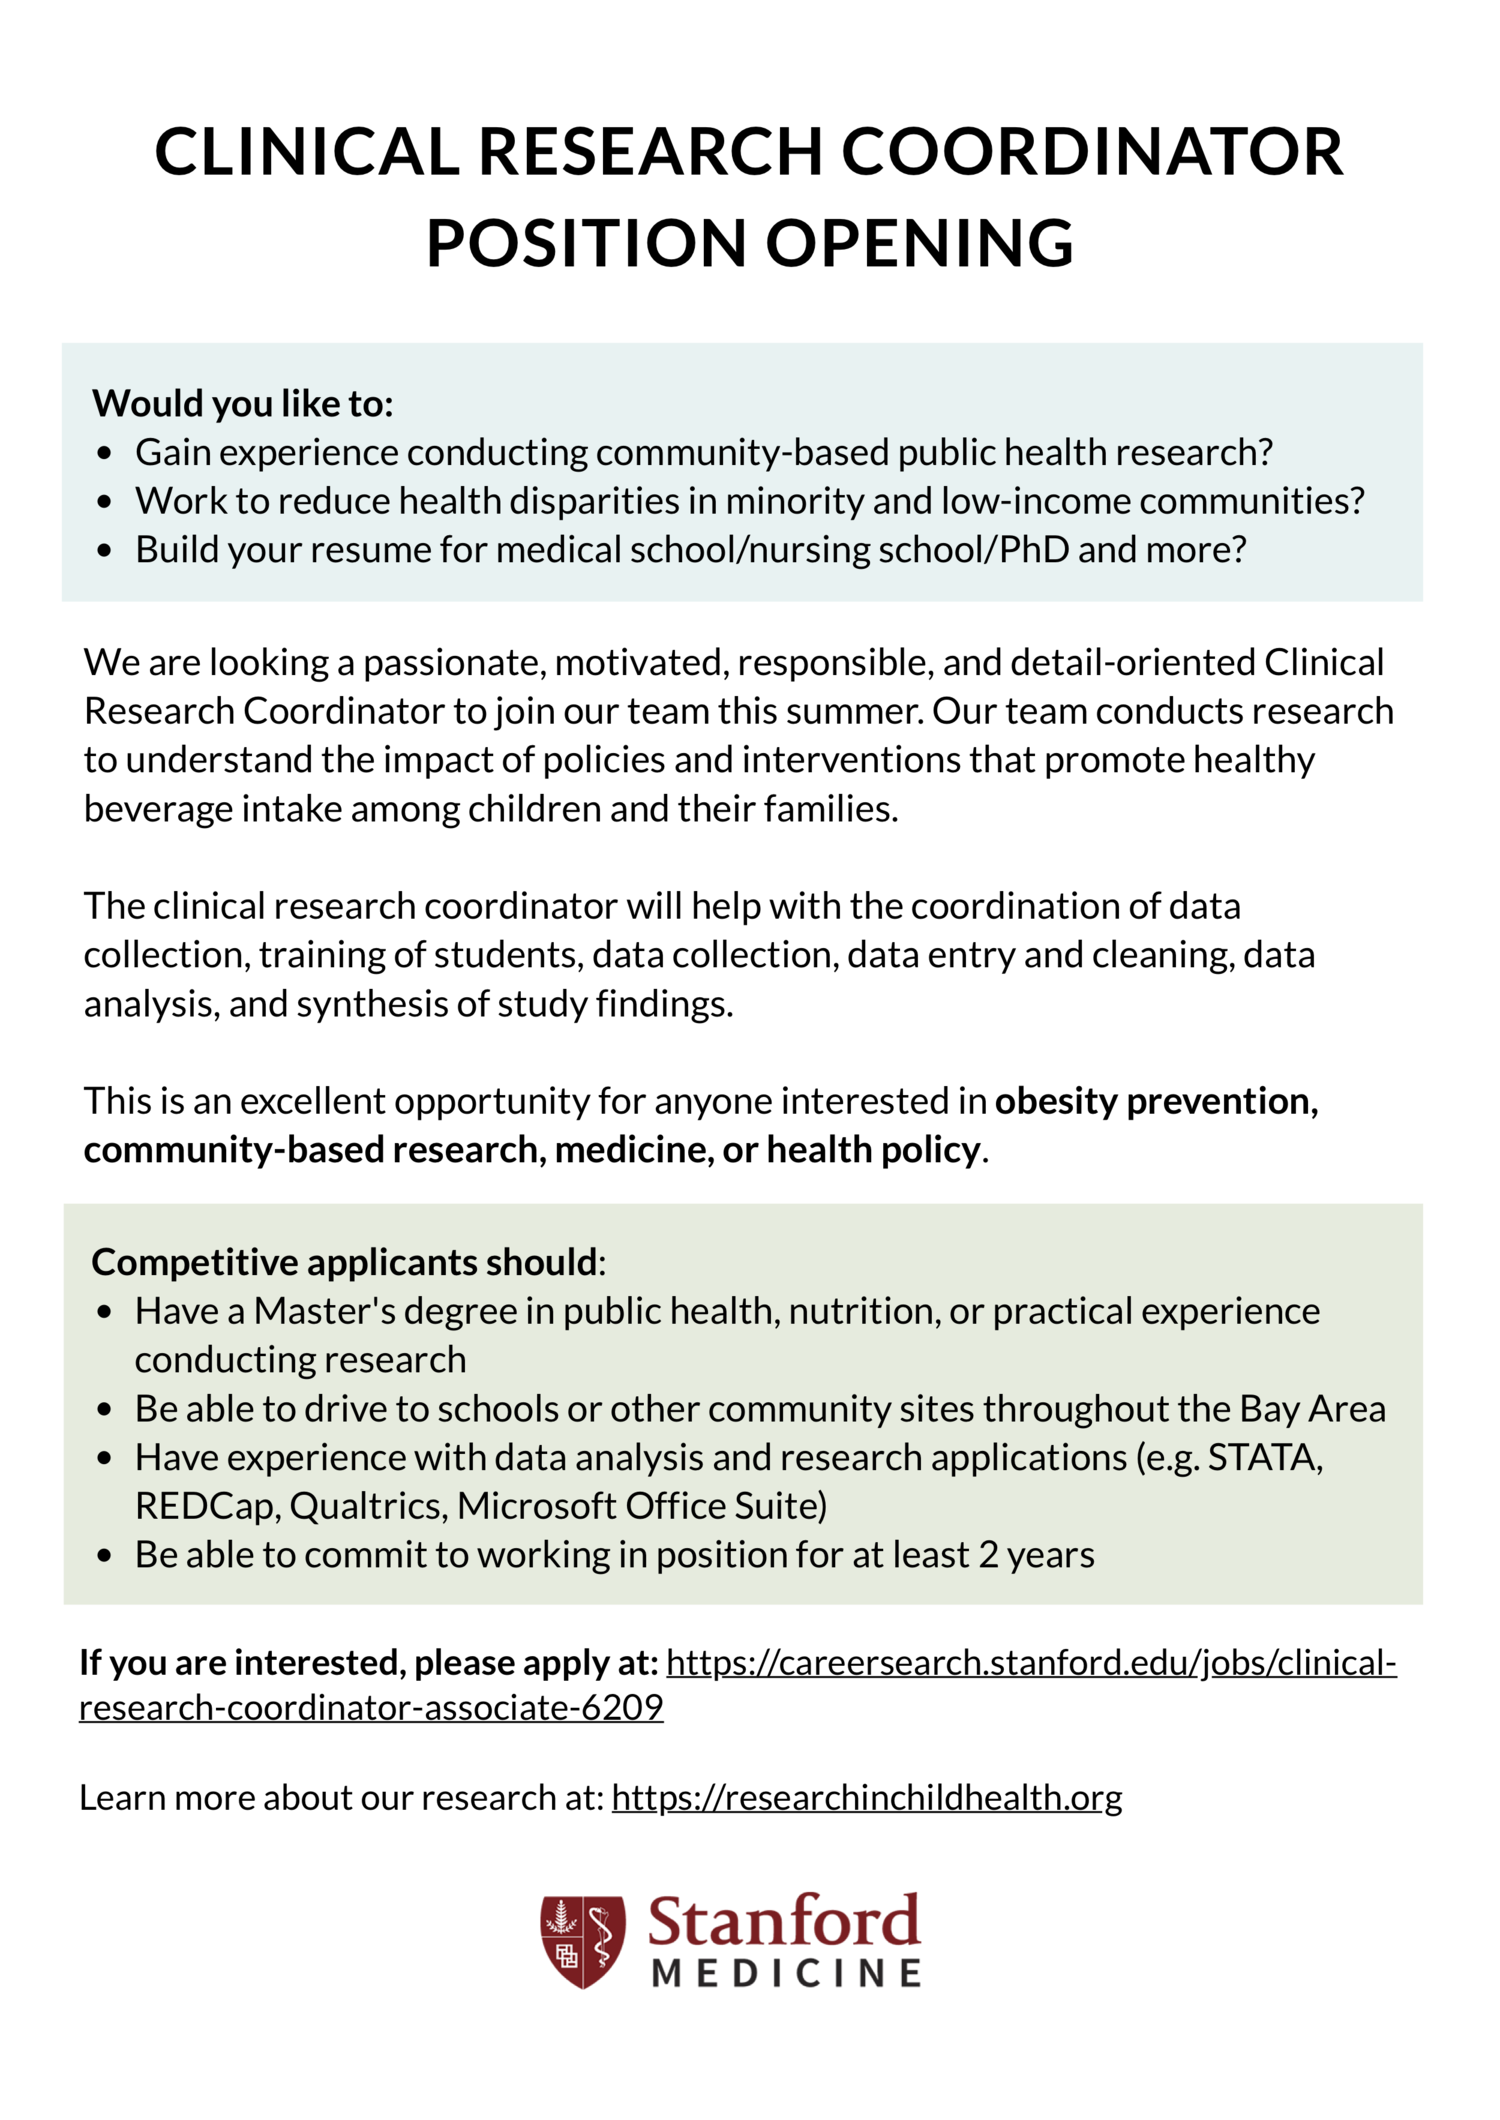 Updates — Partnerships for Research in Child Health